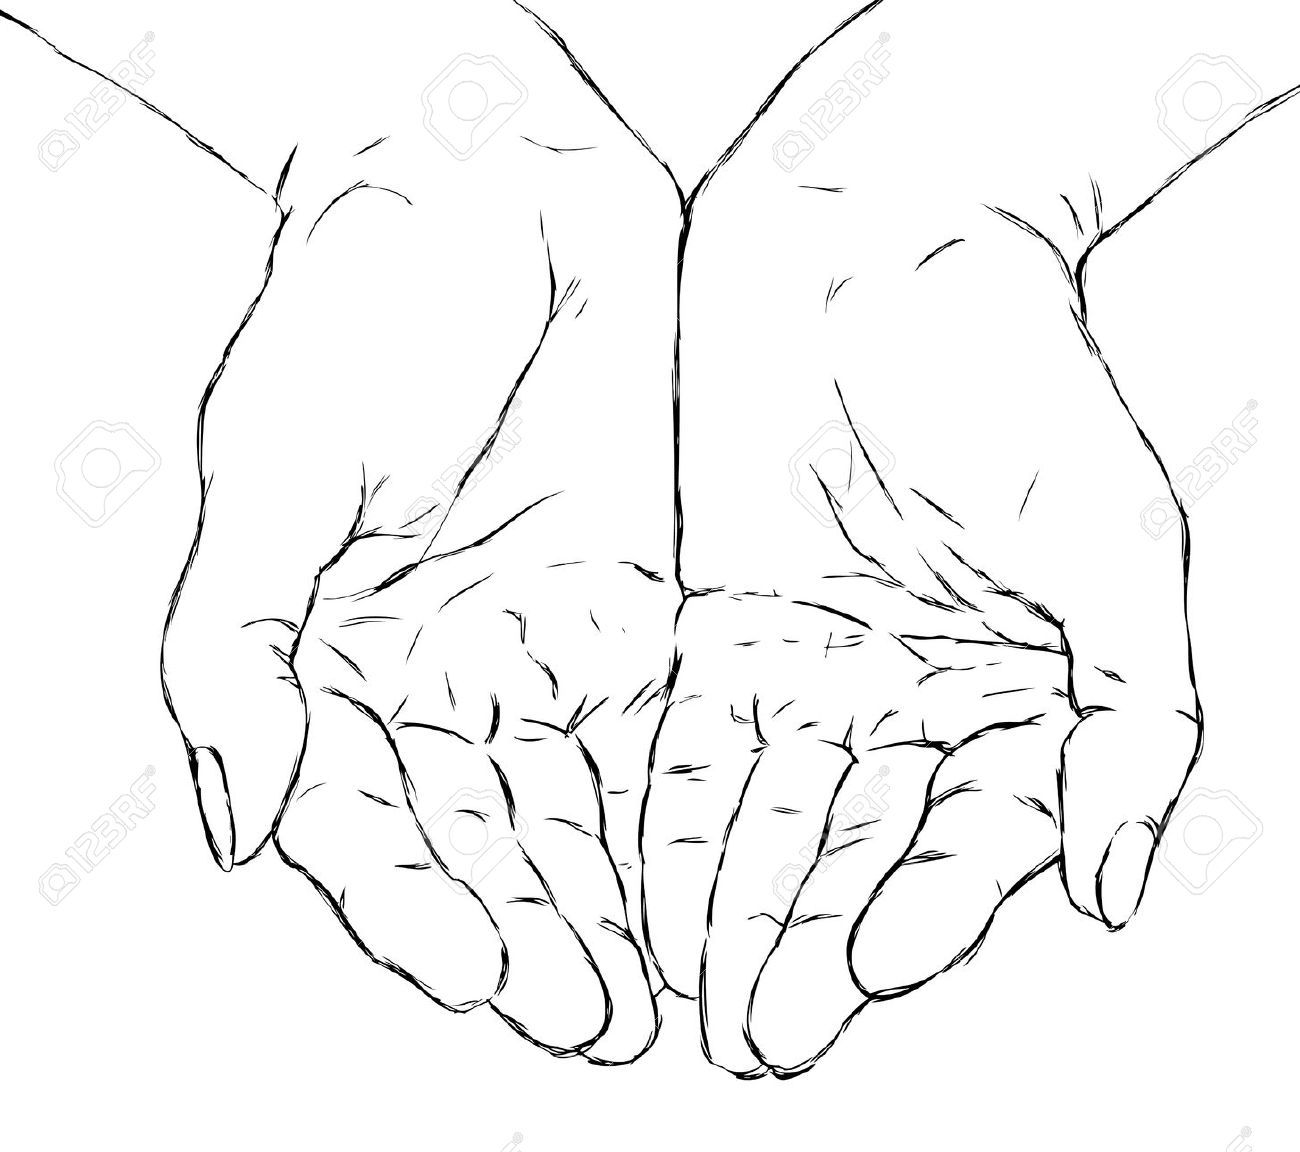 Eba56c2cd06b26728ab5ded07c4327f3 Jpg 1300 1152 Praying Hands Drawing How To Draw Hands Hand Art Projects